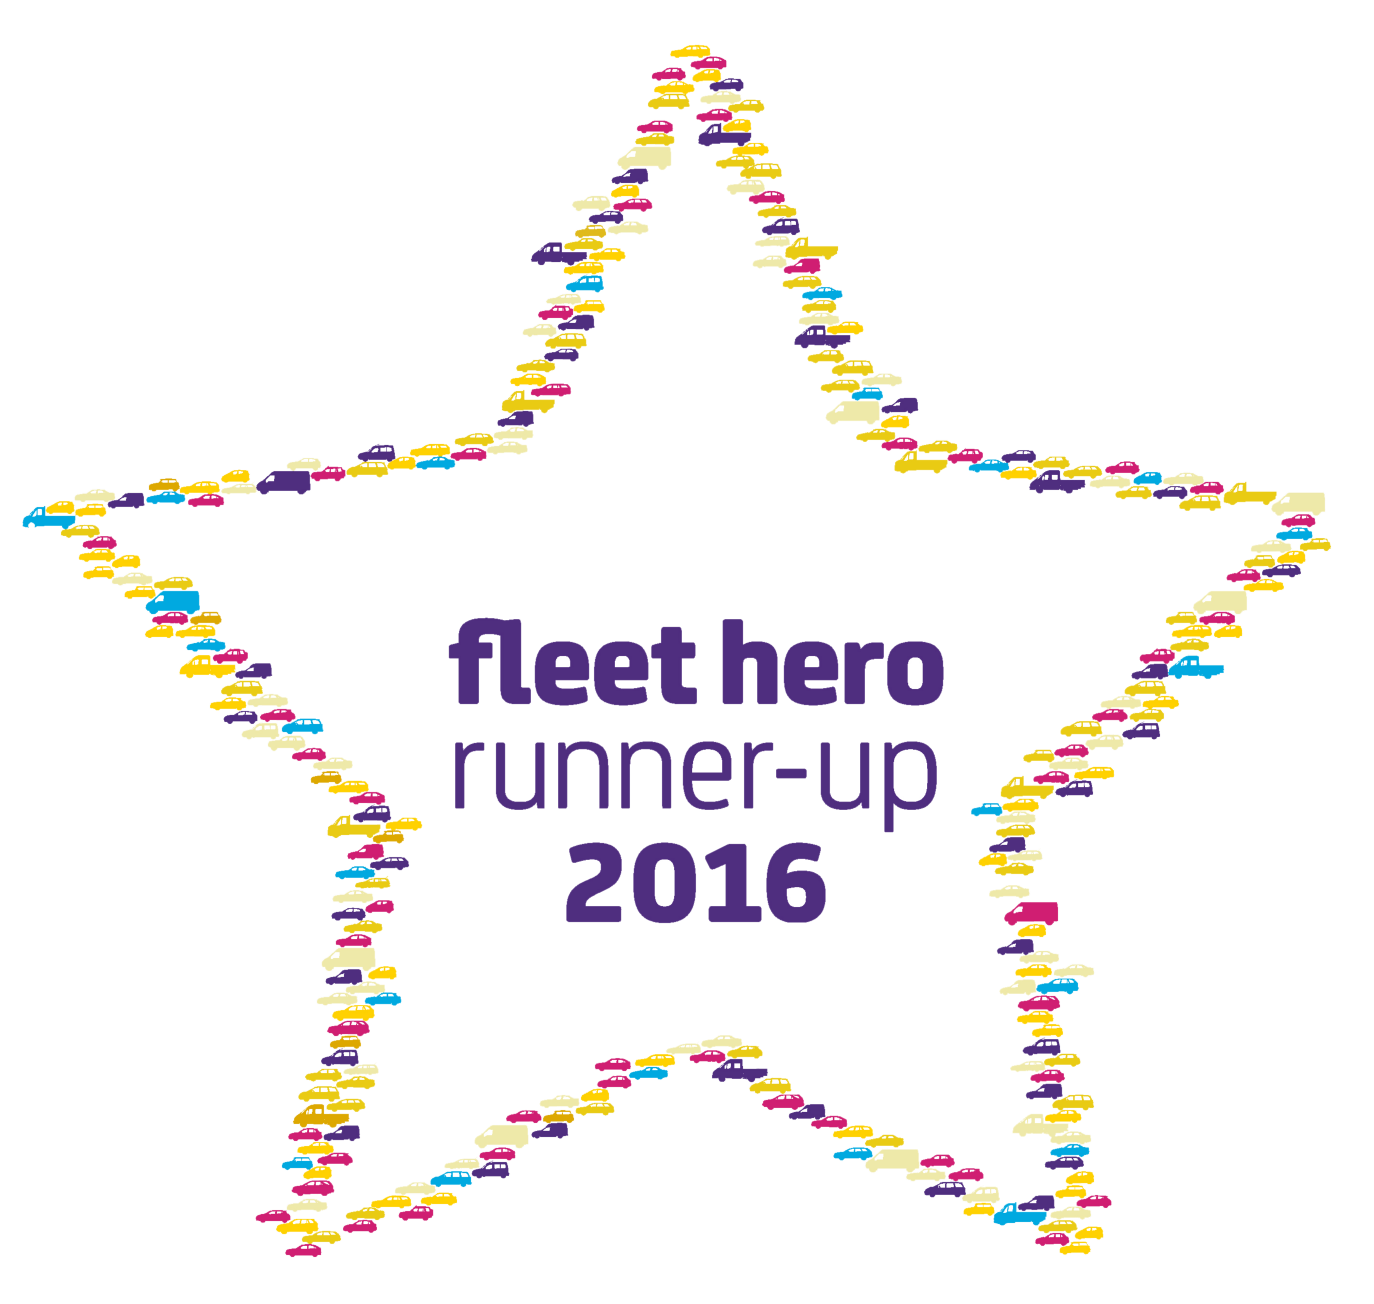 est-fleet-hero-2016-runner-up_centralised-drop